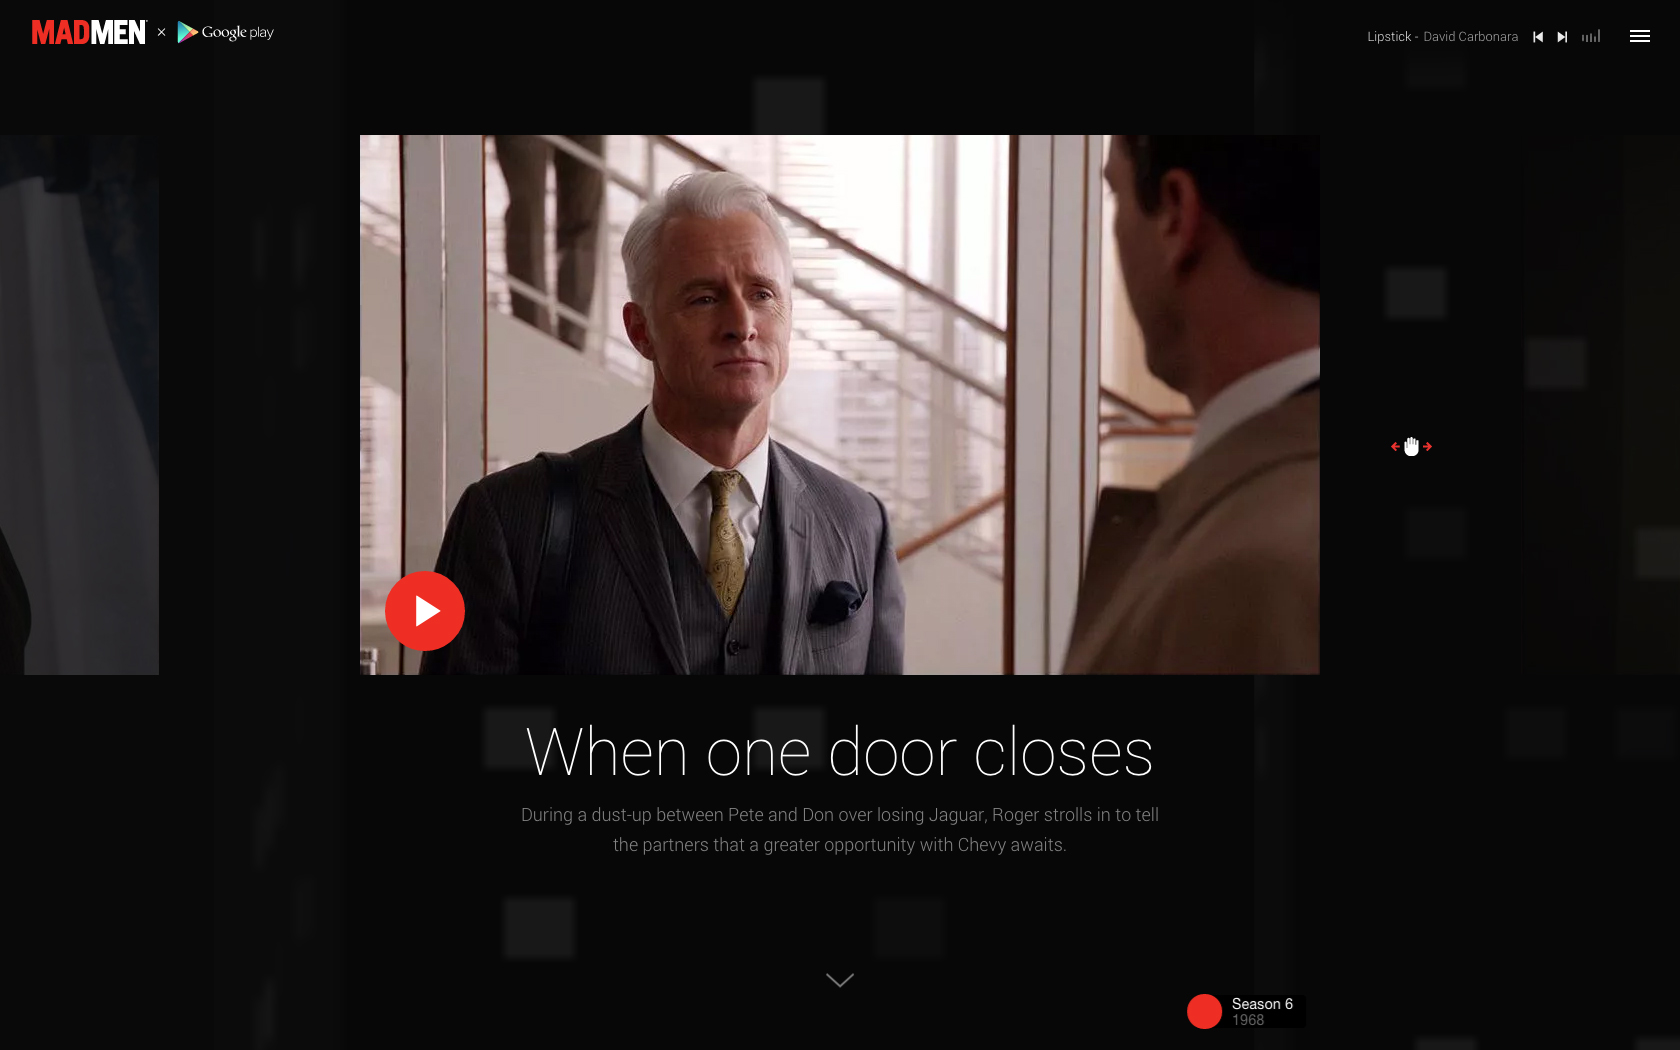 Google - Mad Men - Work - Image - 01